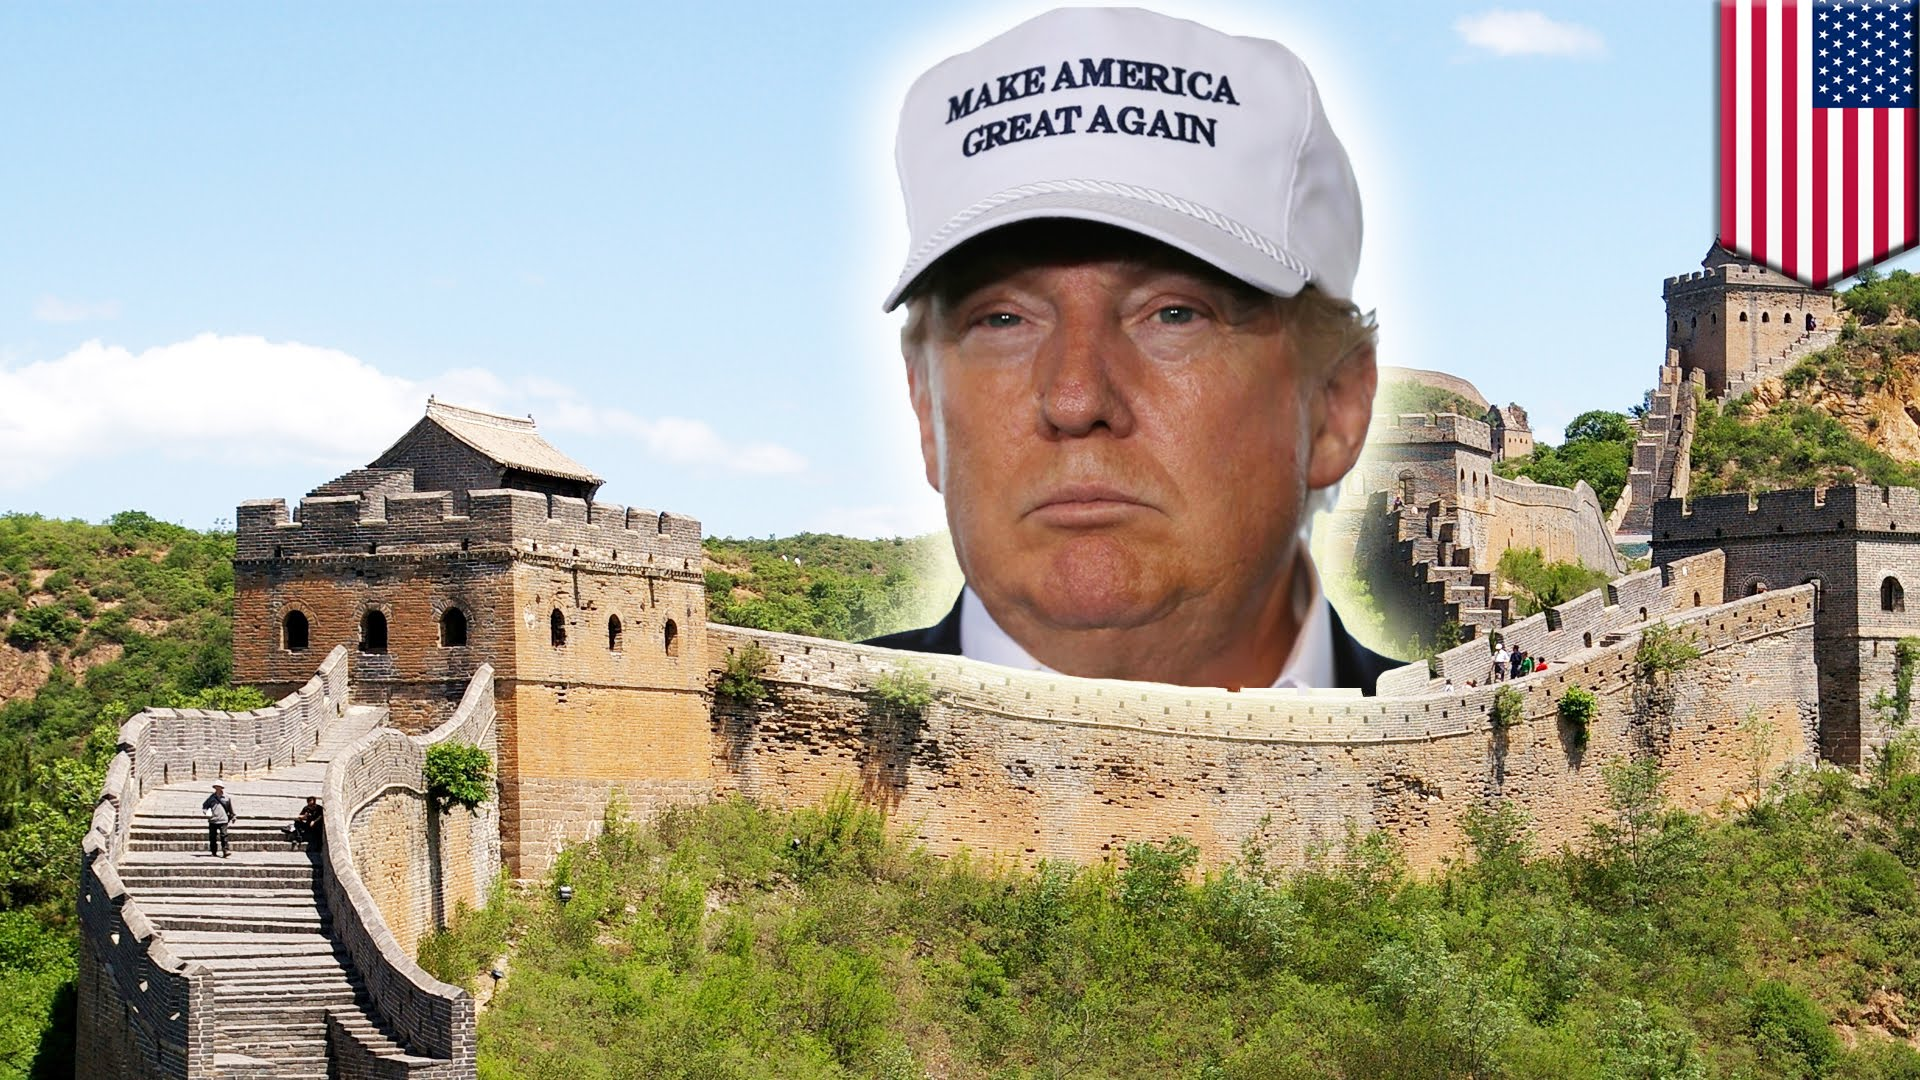 He probably got the inspiration from the Great Wall of China. Img from Collective Revolution